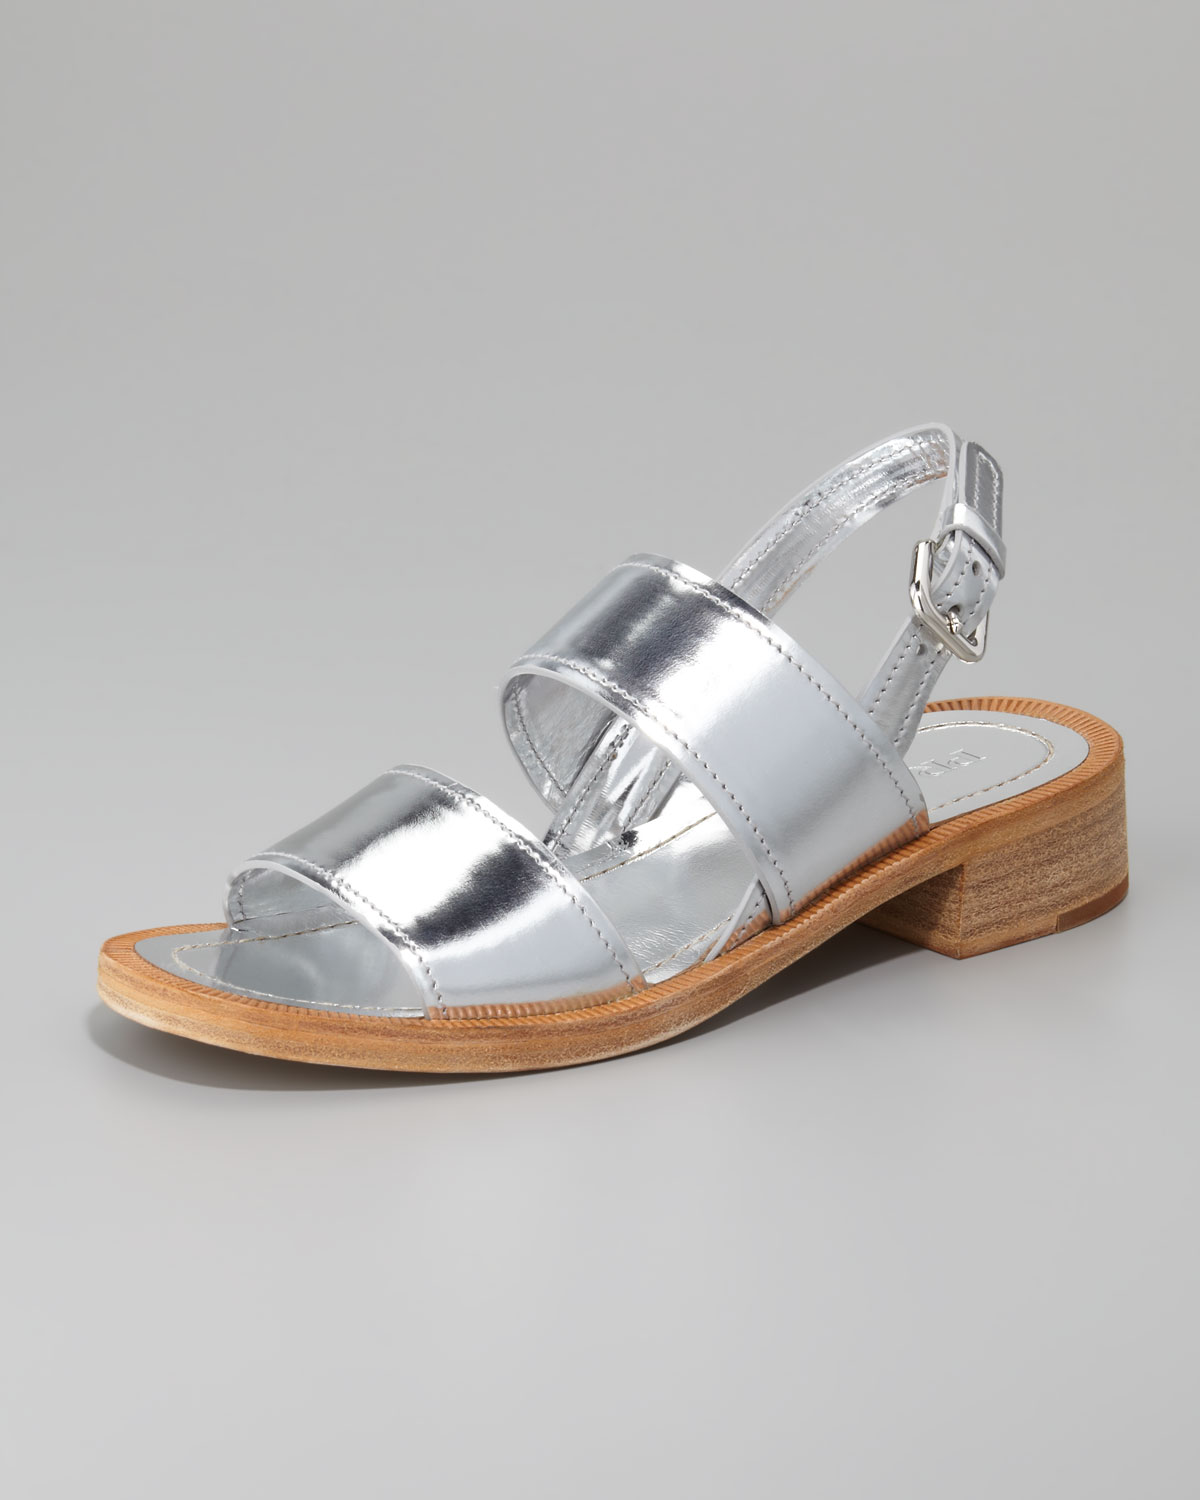 Prada Metallic Slingback Sandals really cheap online cheap lowest price low shipping cheap online top quality online pre order online 0aXIyX29X